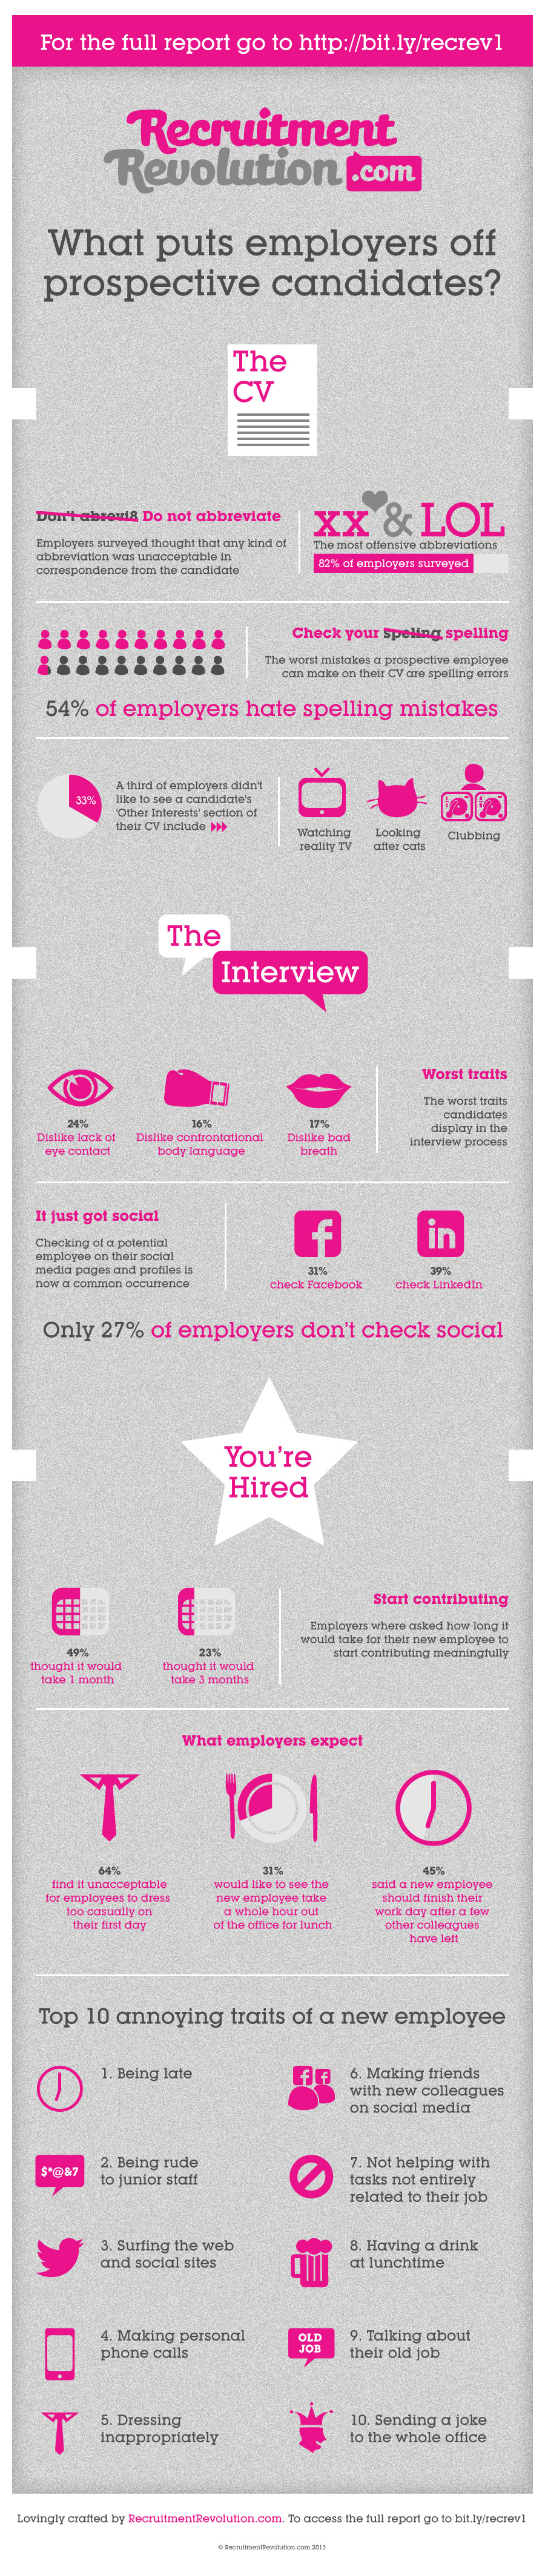 What Puts Employers Off Prospective Candidates?